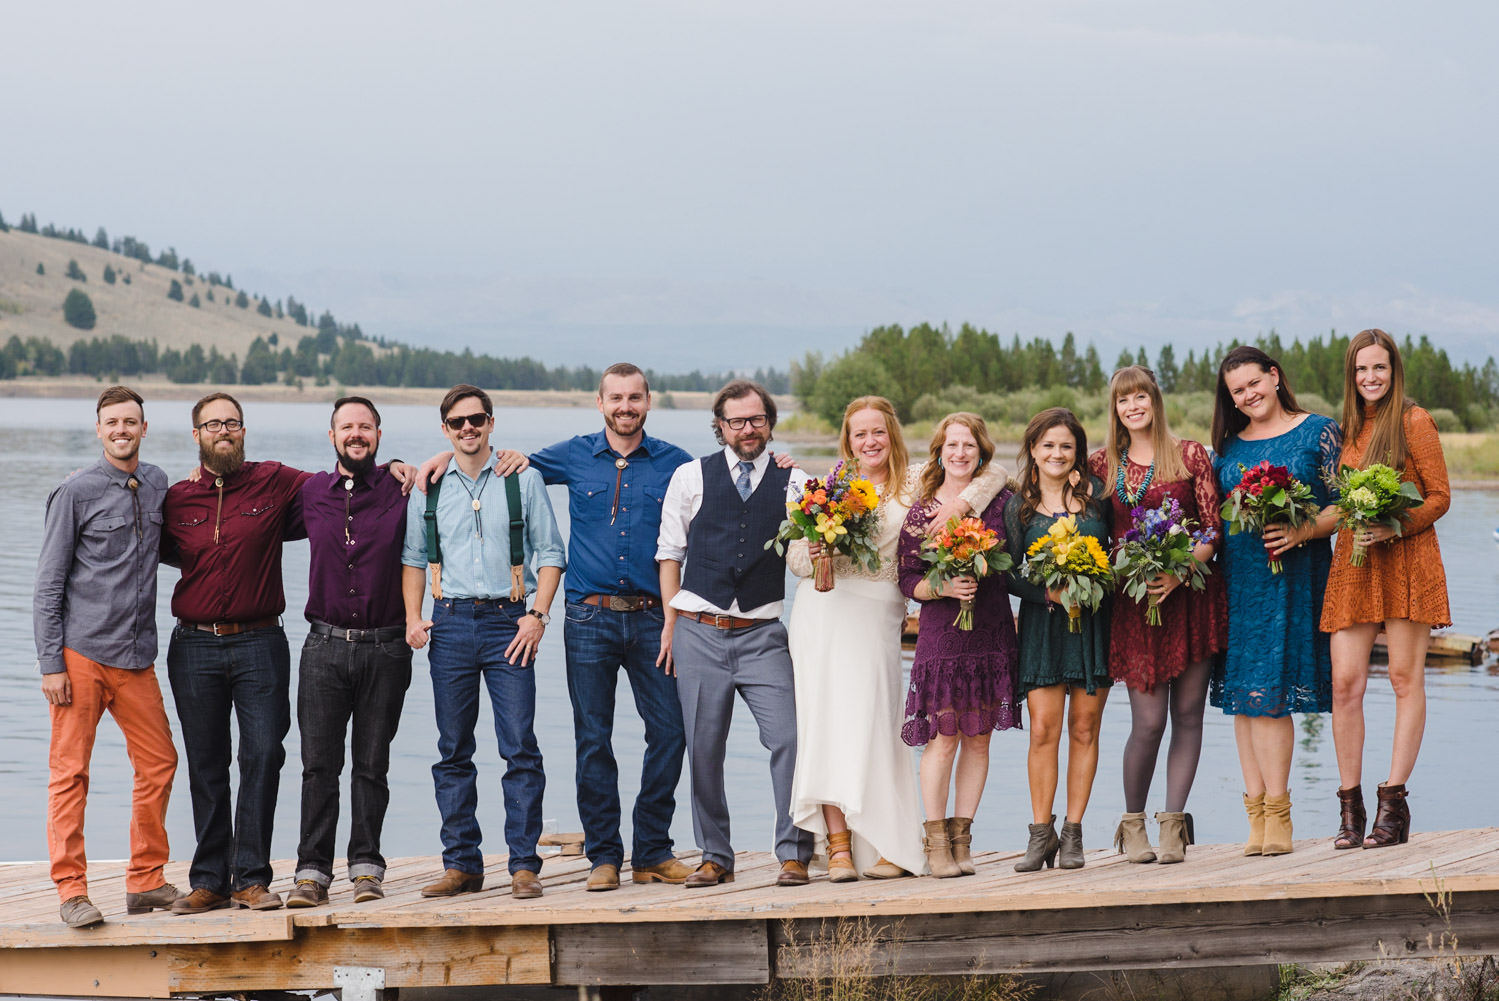 West Yellowstone Wedding newlyweds and their wedding party photo